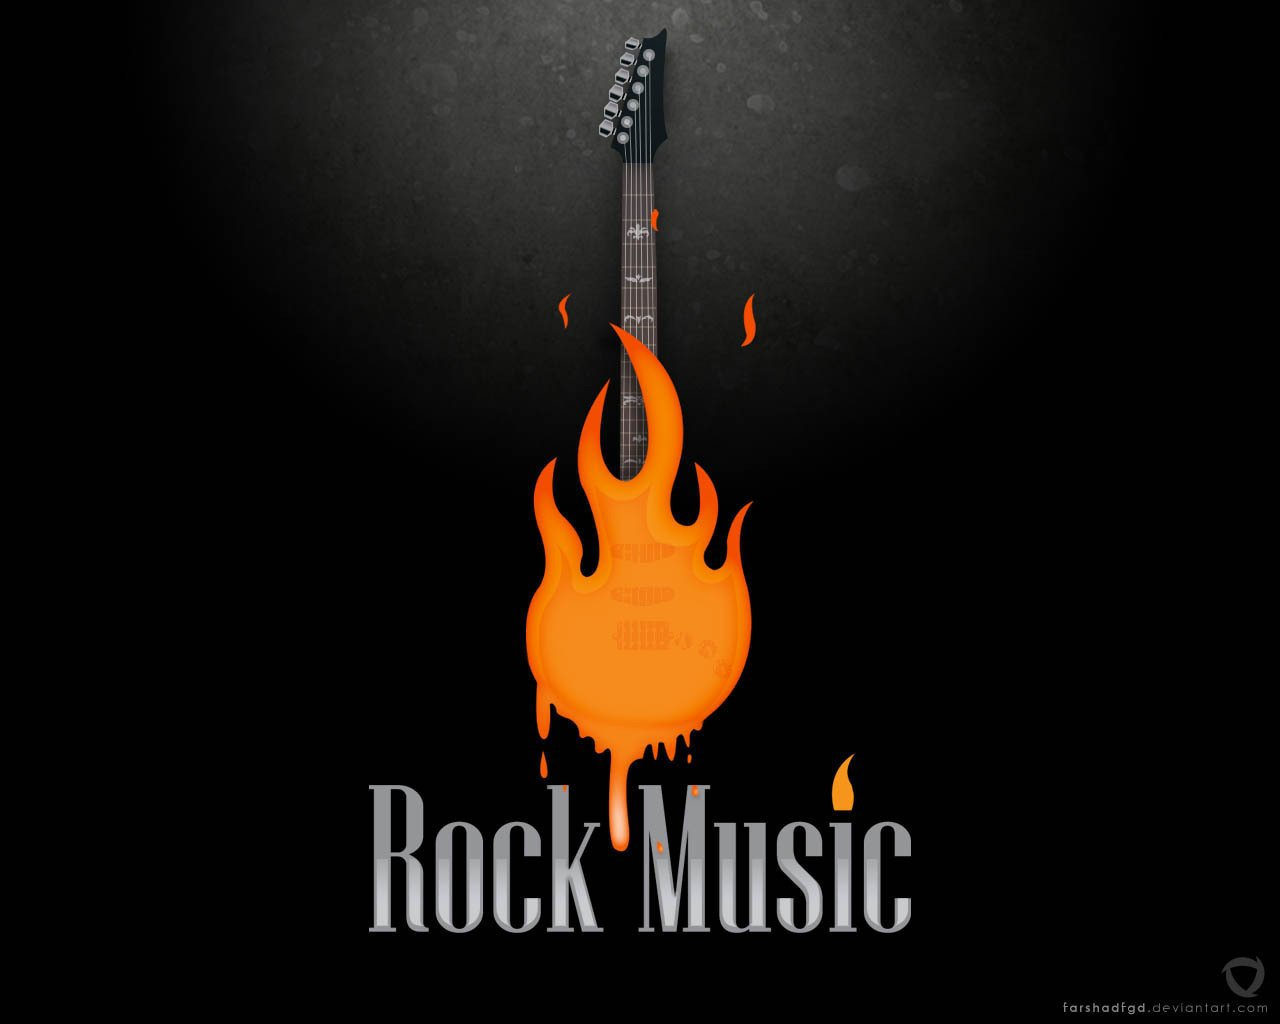 rock music images rock HD wallpaper and background photos 1280x1024